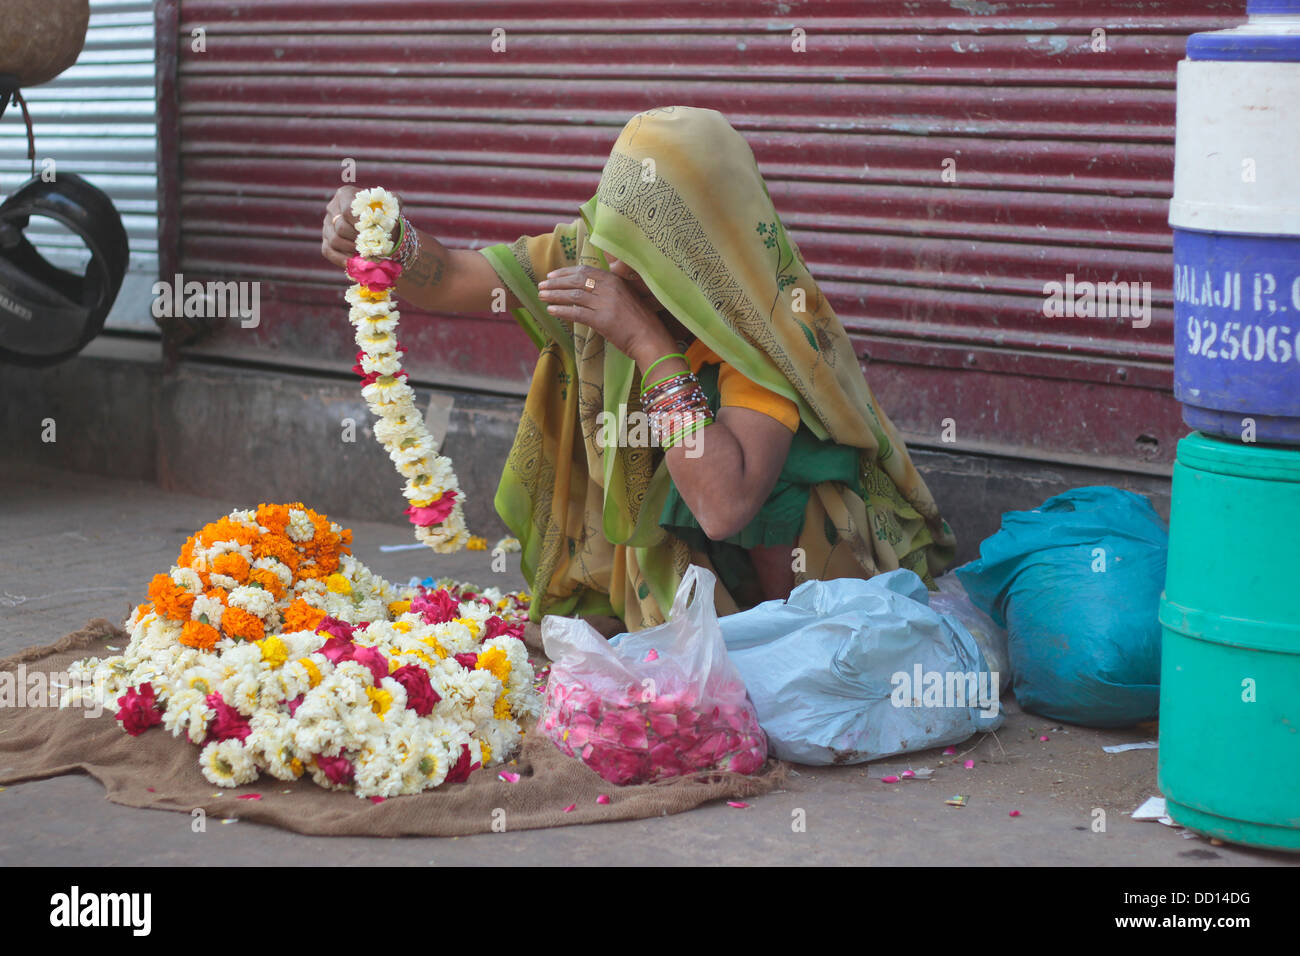 An Indian woman flower seller at the Chandni Chowk flower market in Old Delhi. - Stock Image